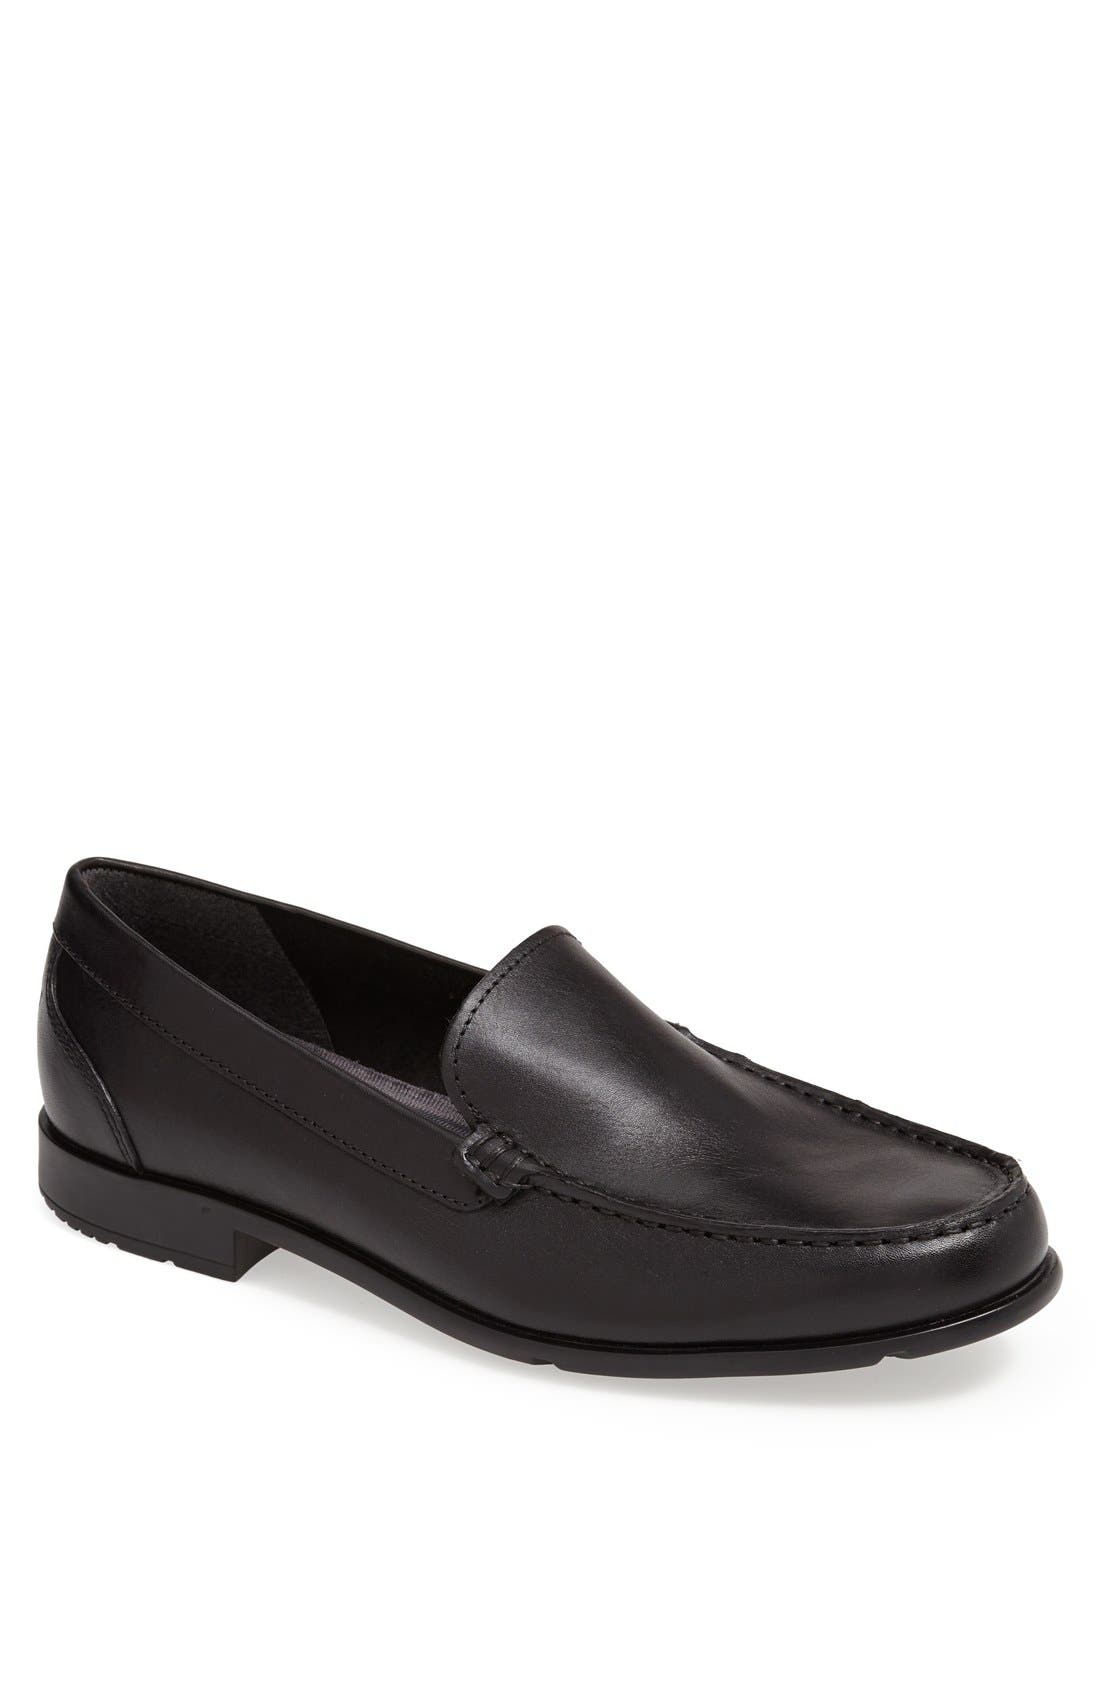 Main Image - Rockport Classic Venetian Loafer (Men)